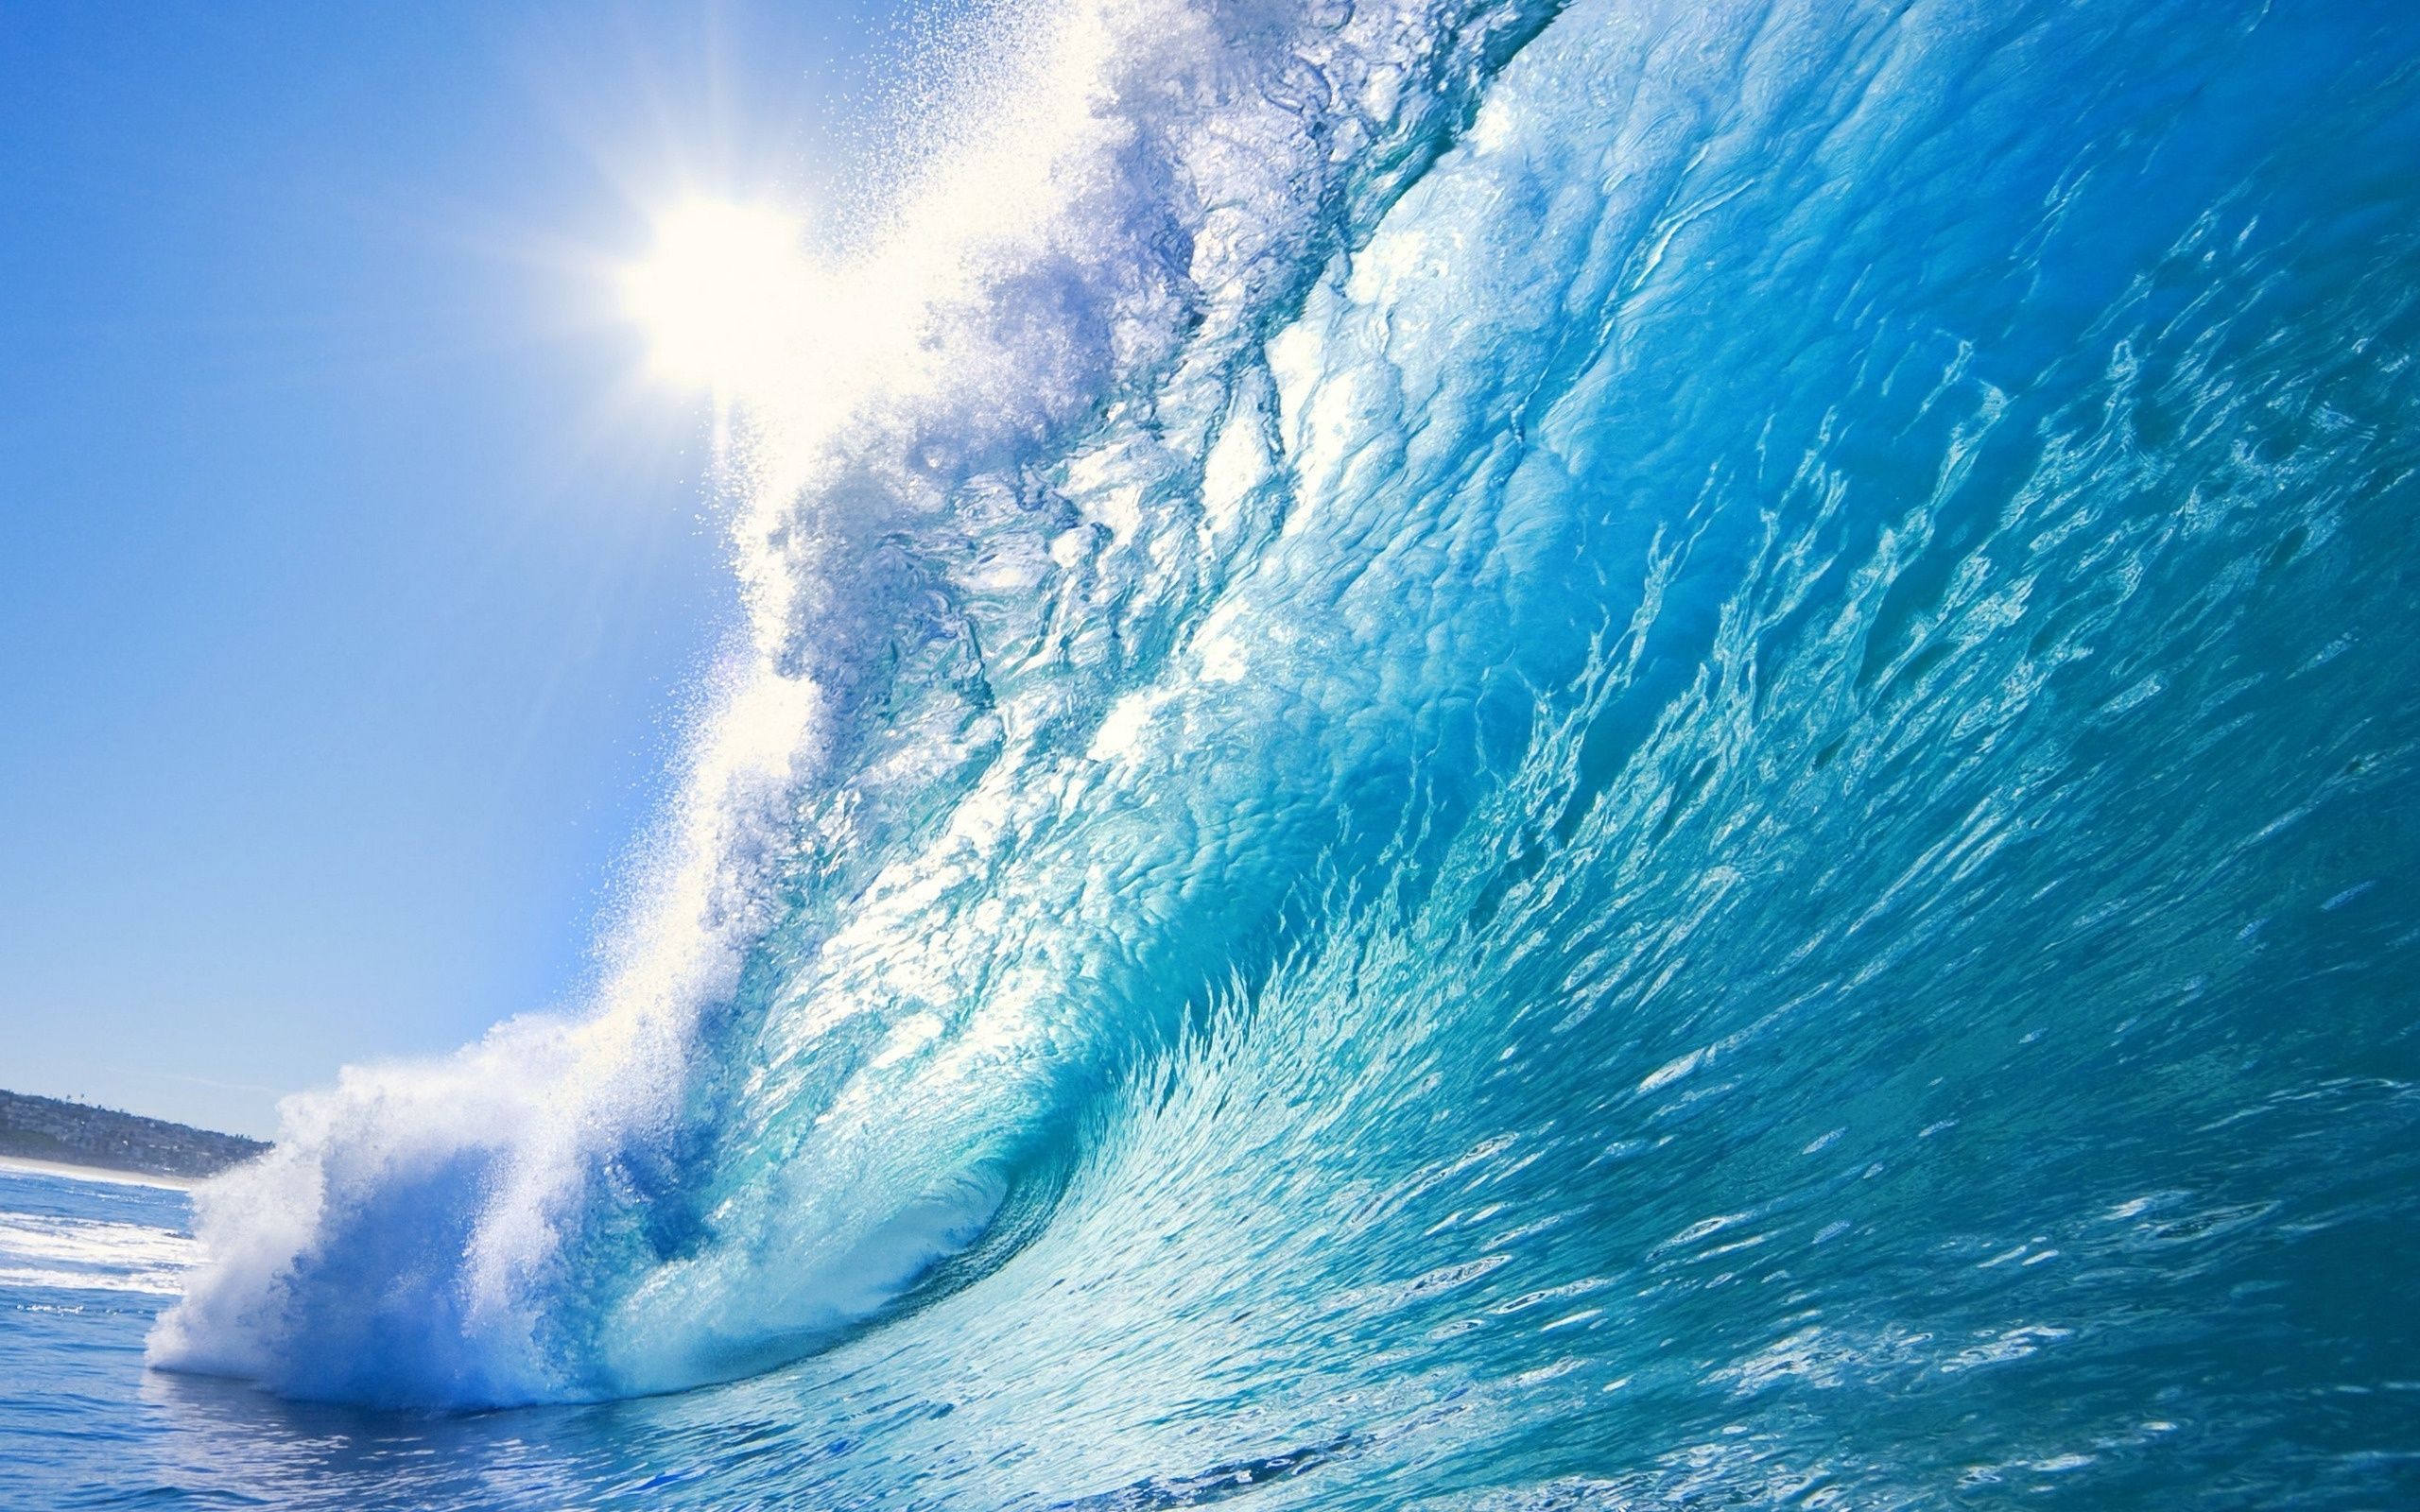 Amazing Ocean Waves Wallpaper Xpx